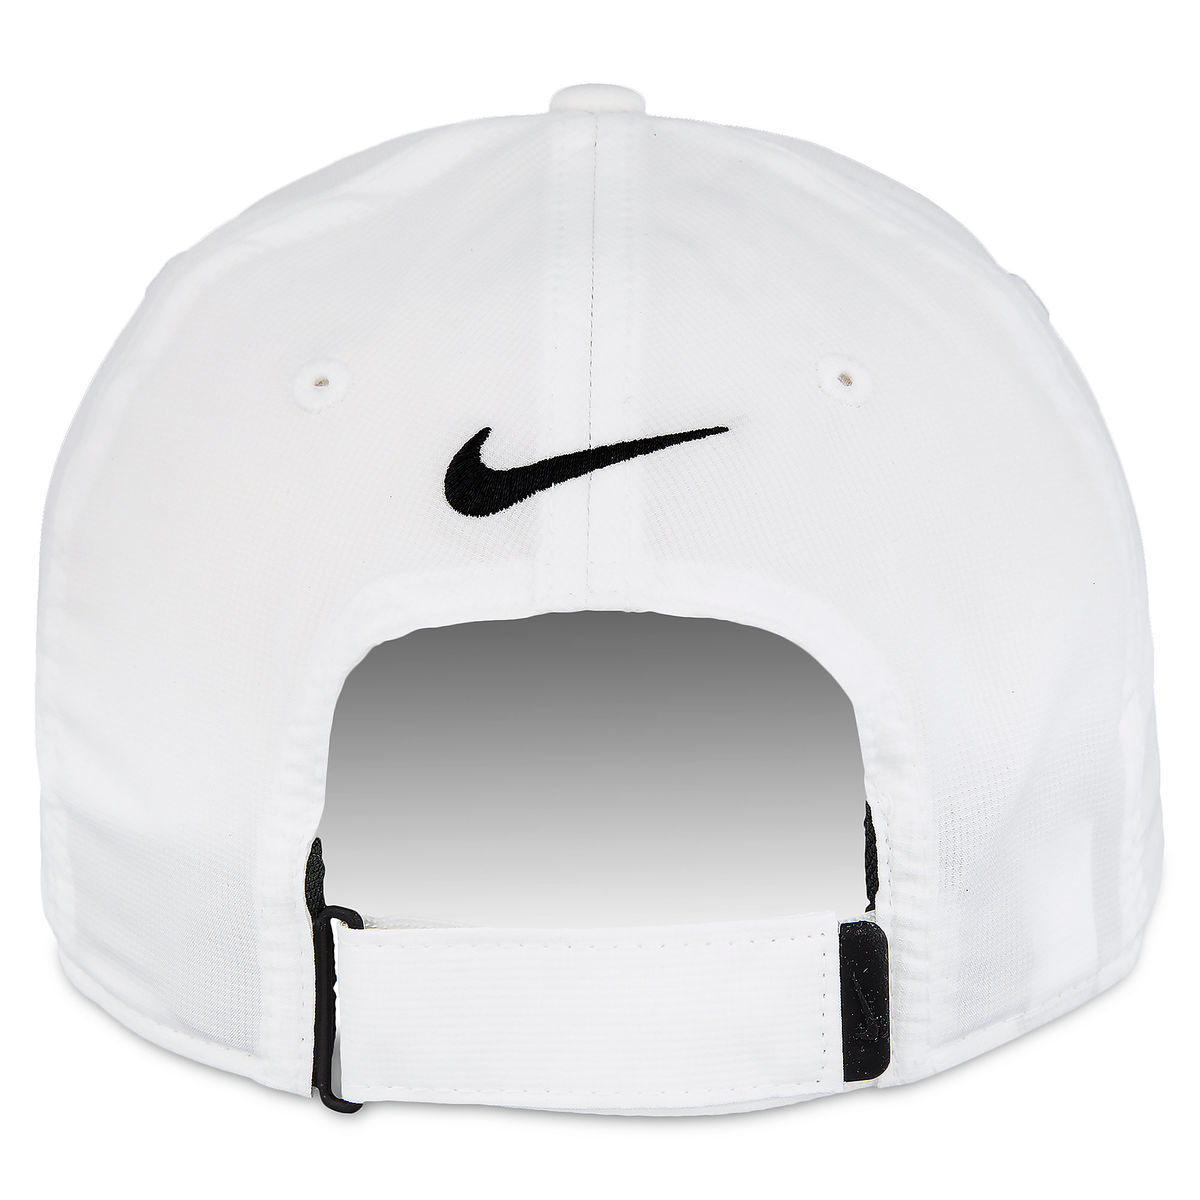 Mickey Mouse Silhouette Baseball Hat by Nike - White  01b060516c7